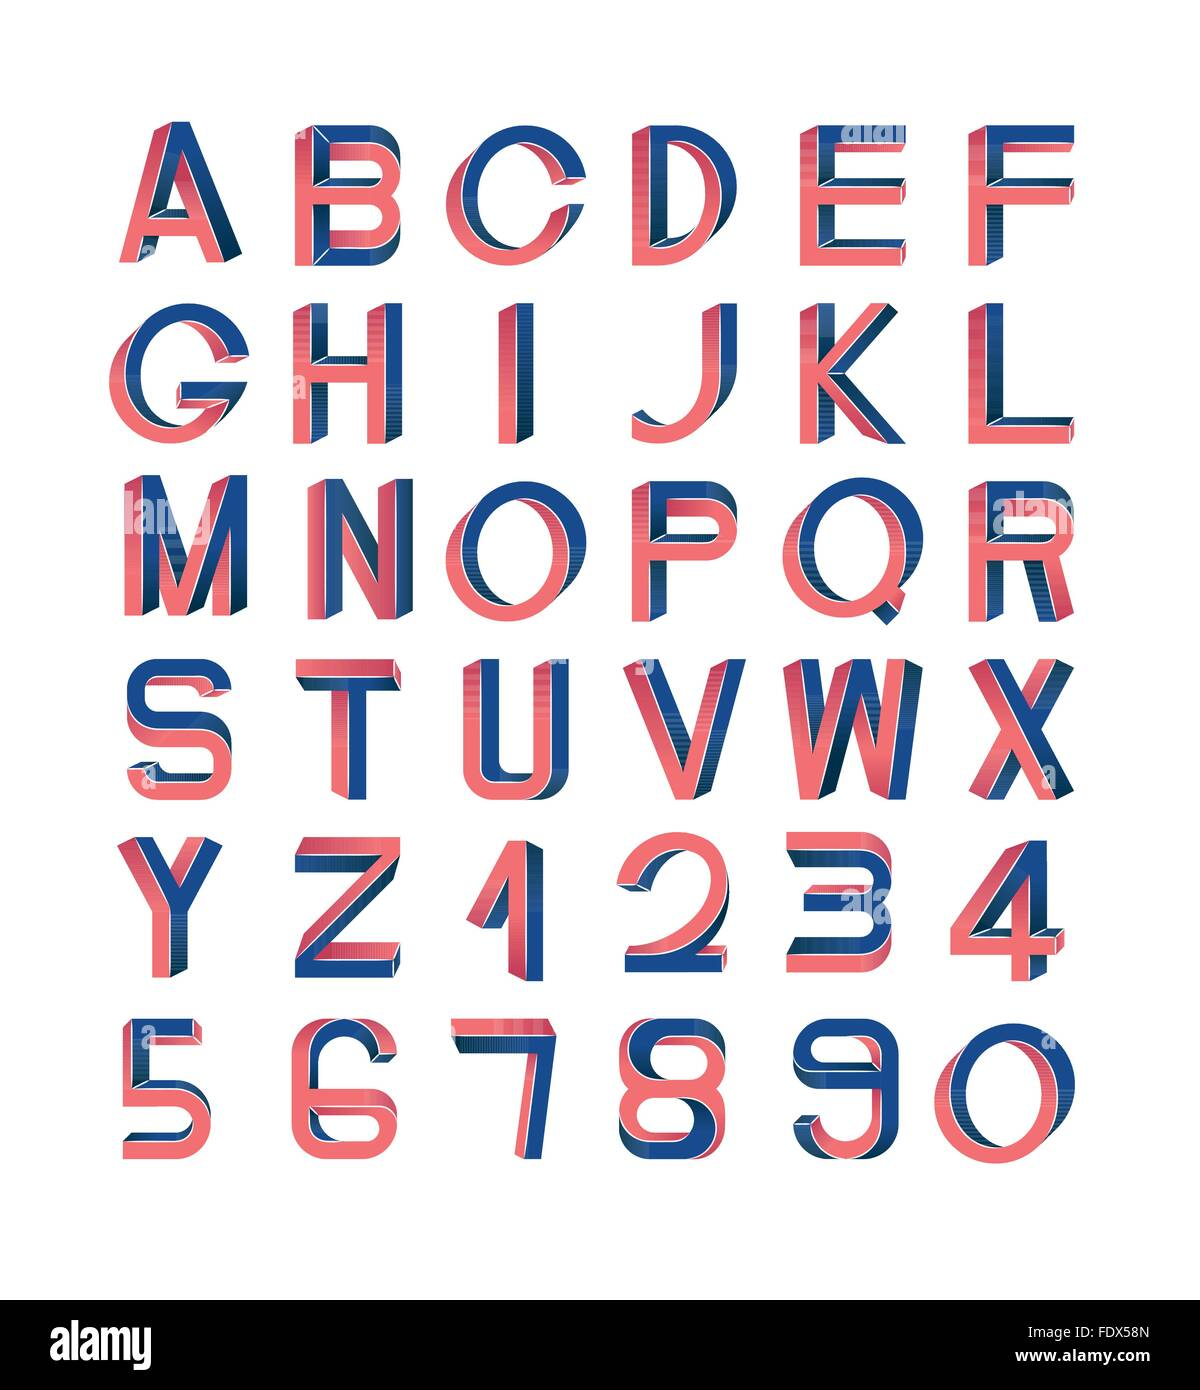 Impossible font set, including numerals. Red and blue gradients, white striped edges. Stock Vector